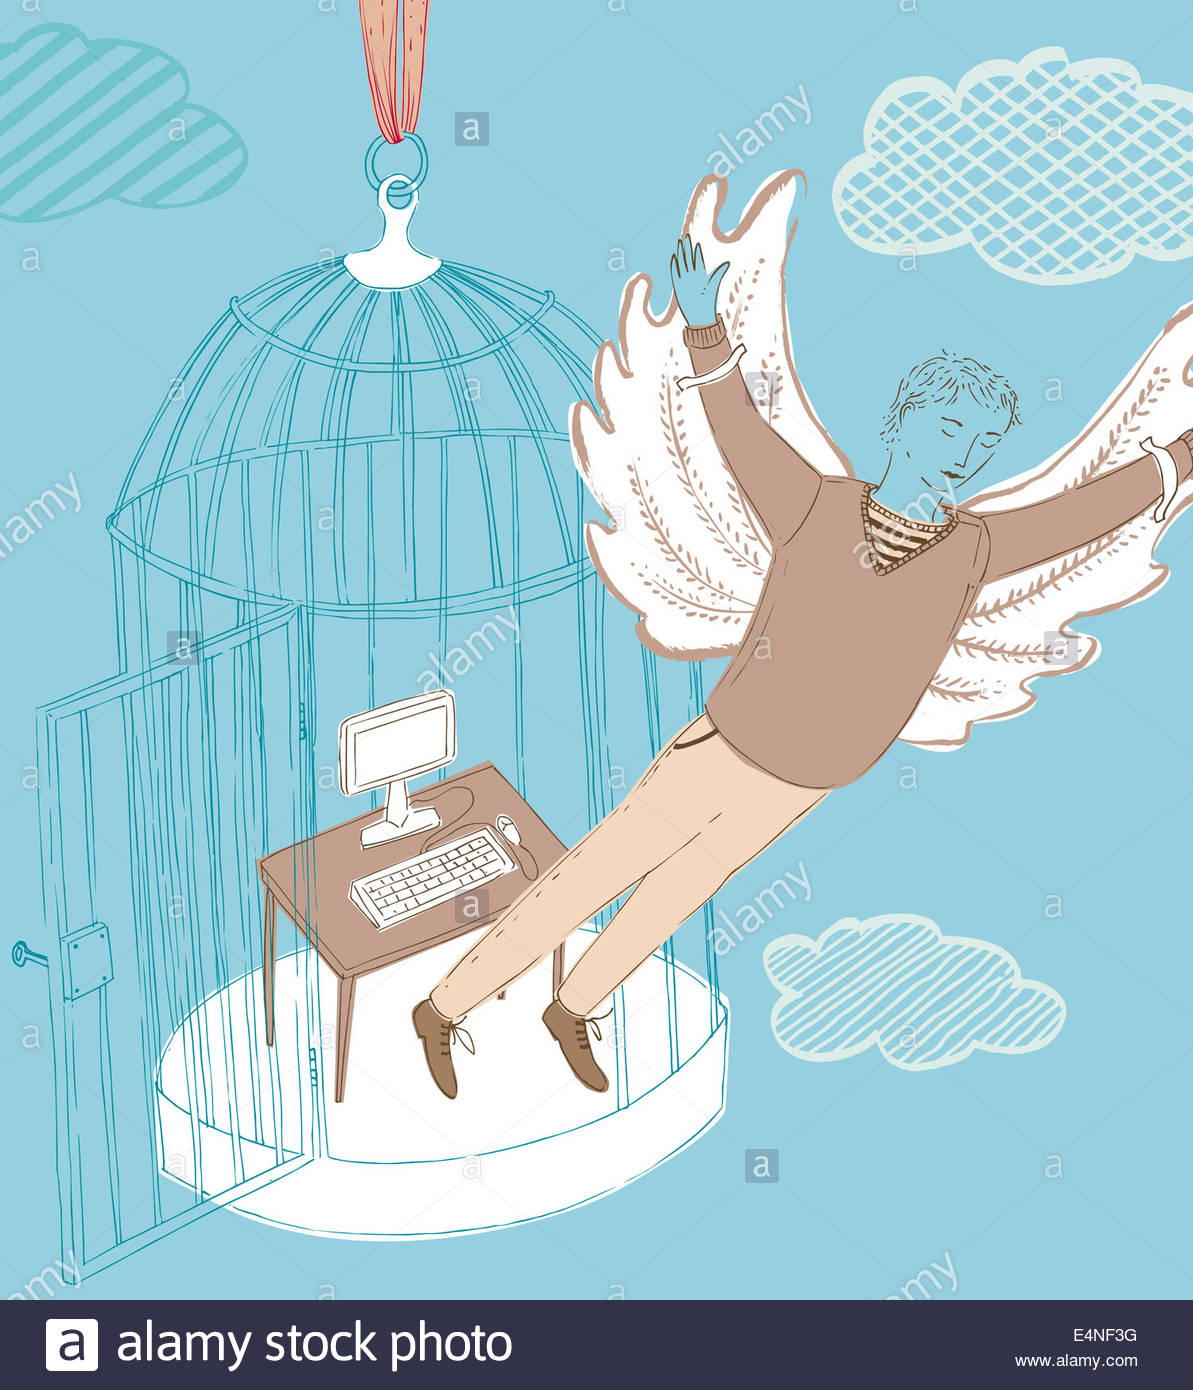 Businessman with wings escaping office inside of birdcage - Stock Image